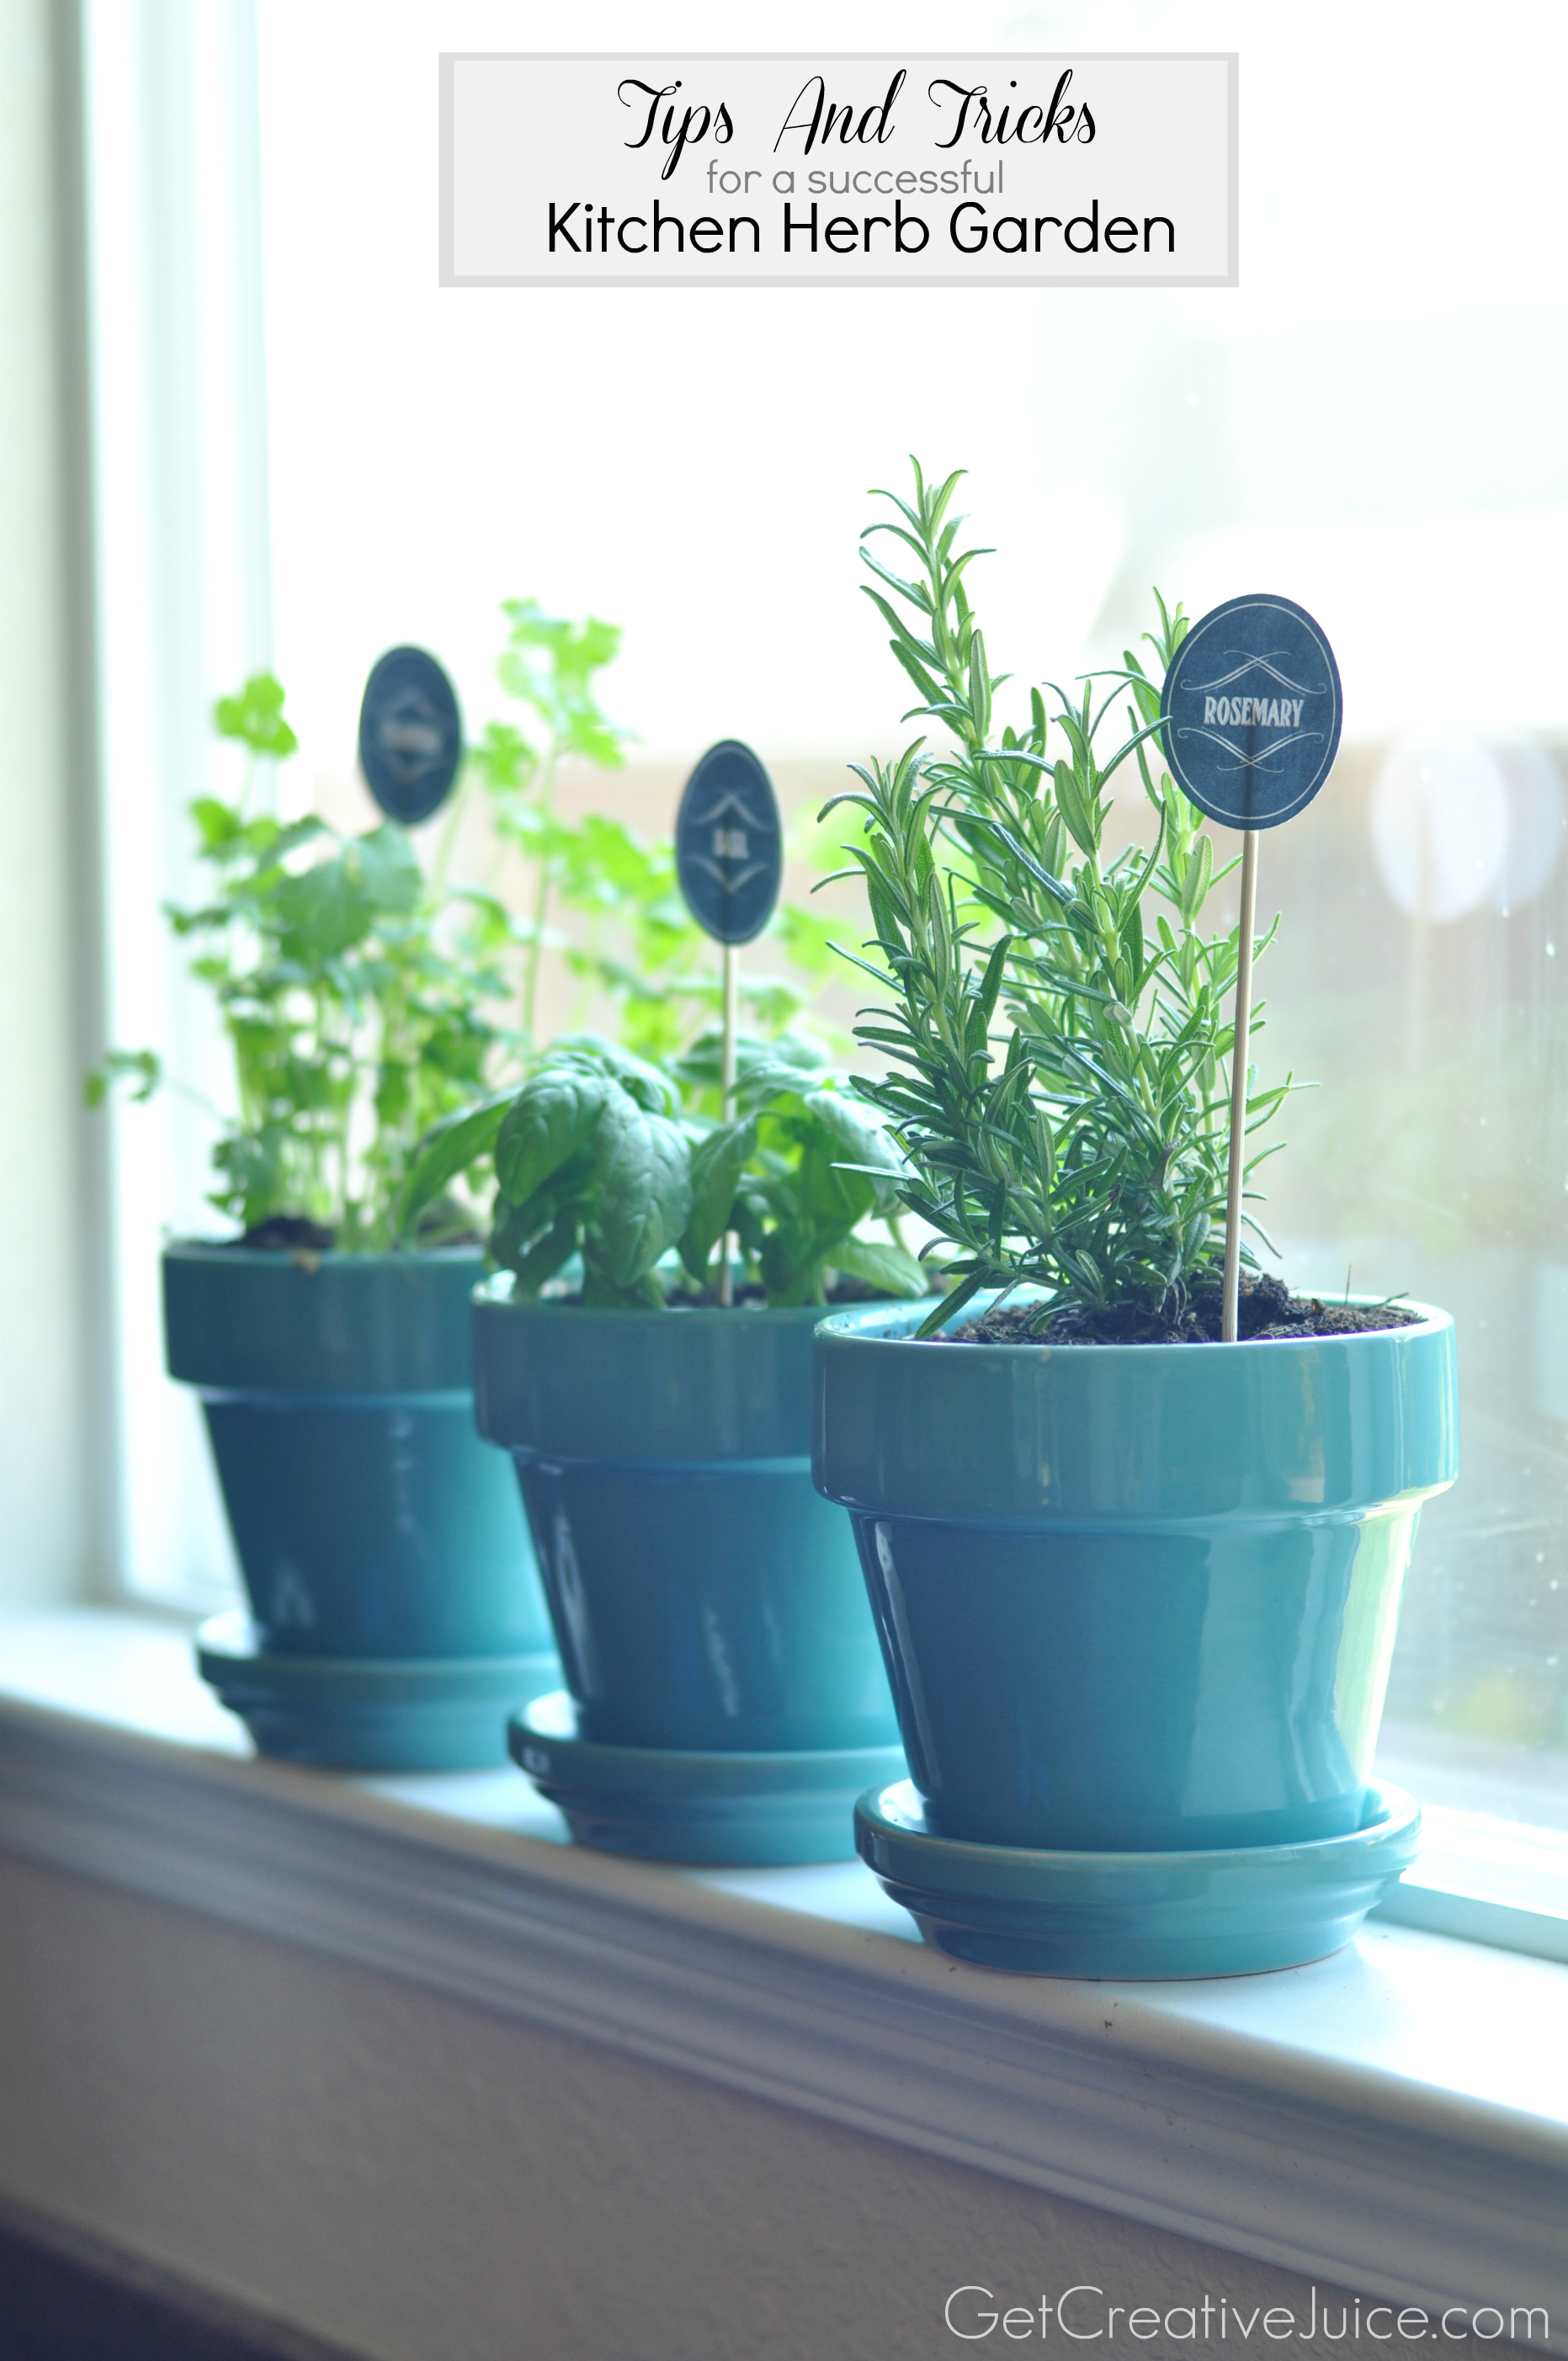 Recently I Rounded Up Some Of The Most Beautiful Clever And Cretive Indoor Herb Gardens From Around Web In Search Inspiration For Starting My Own